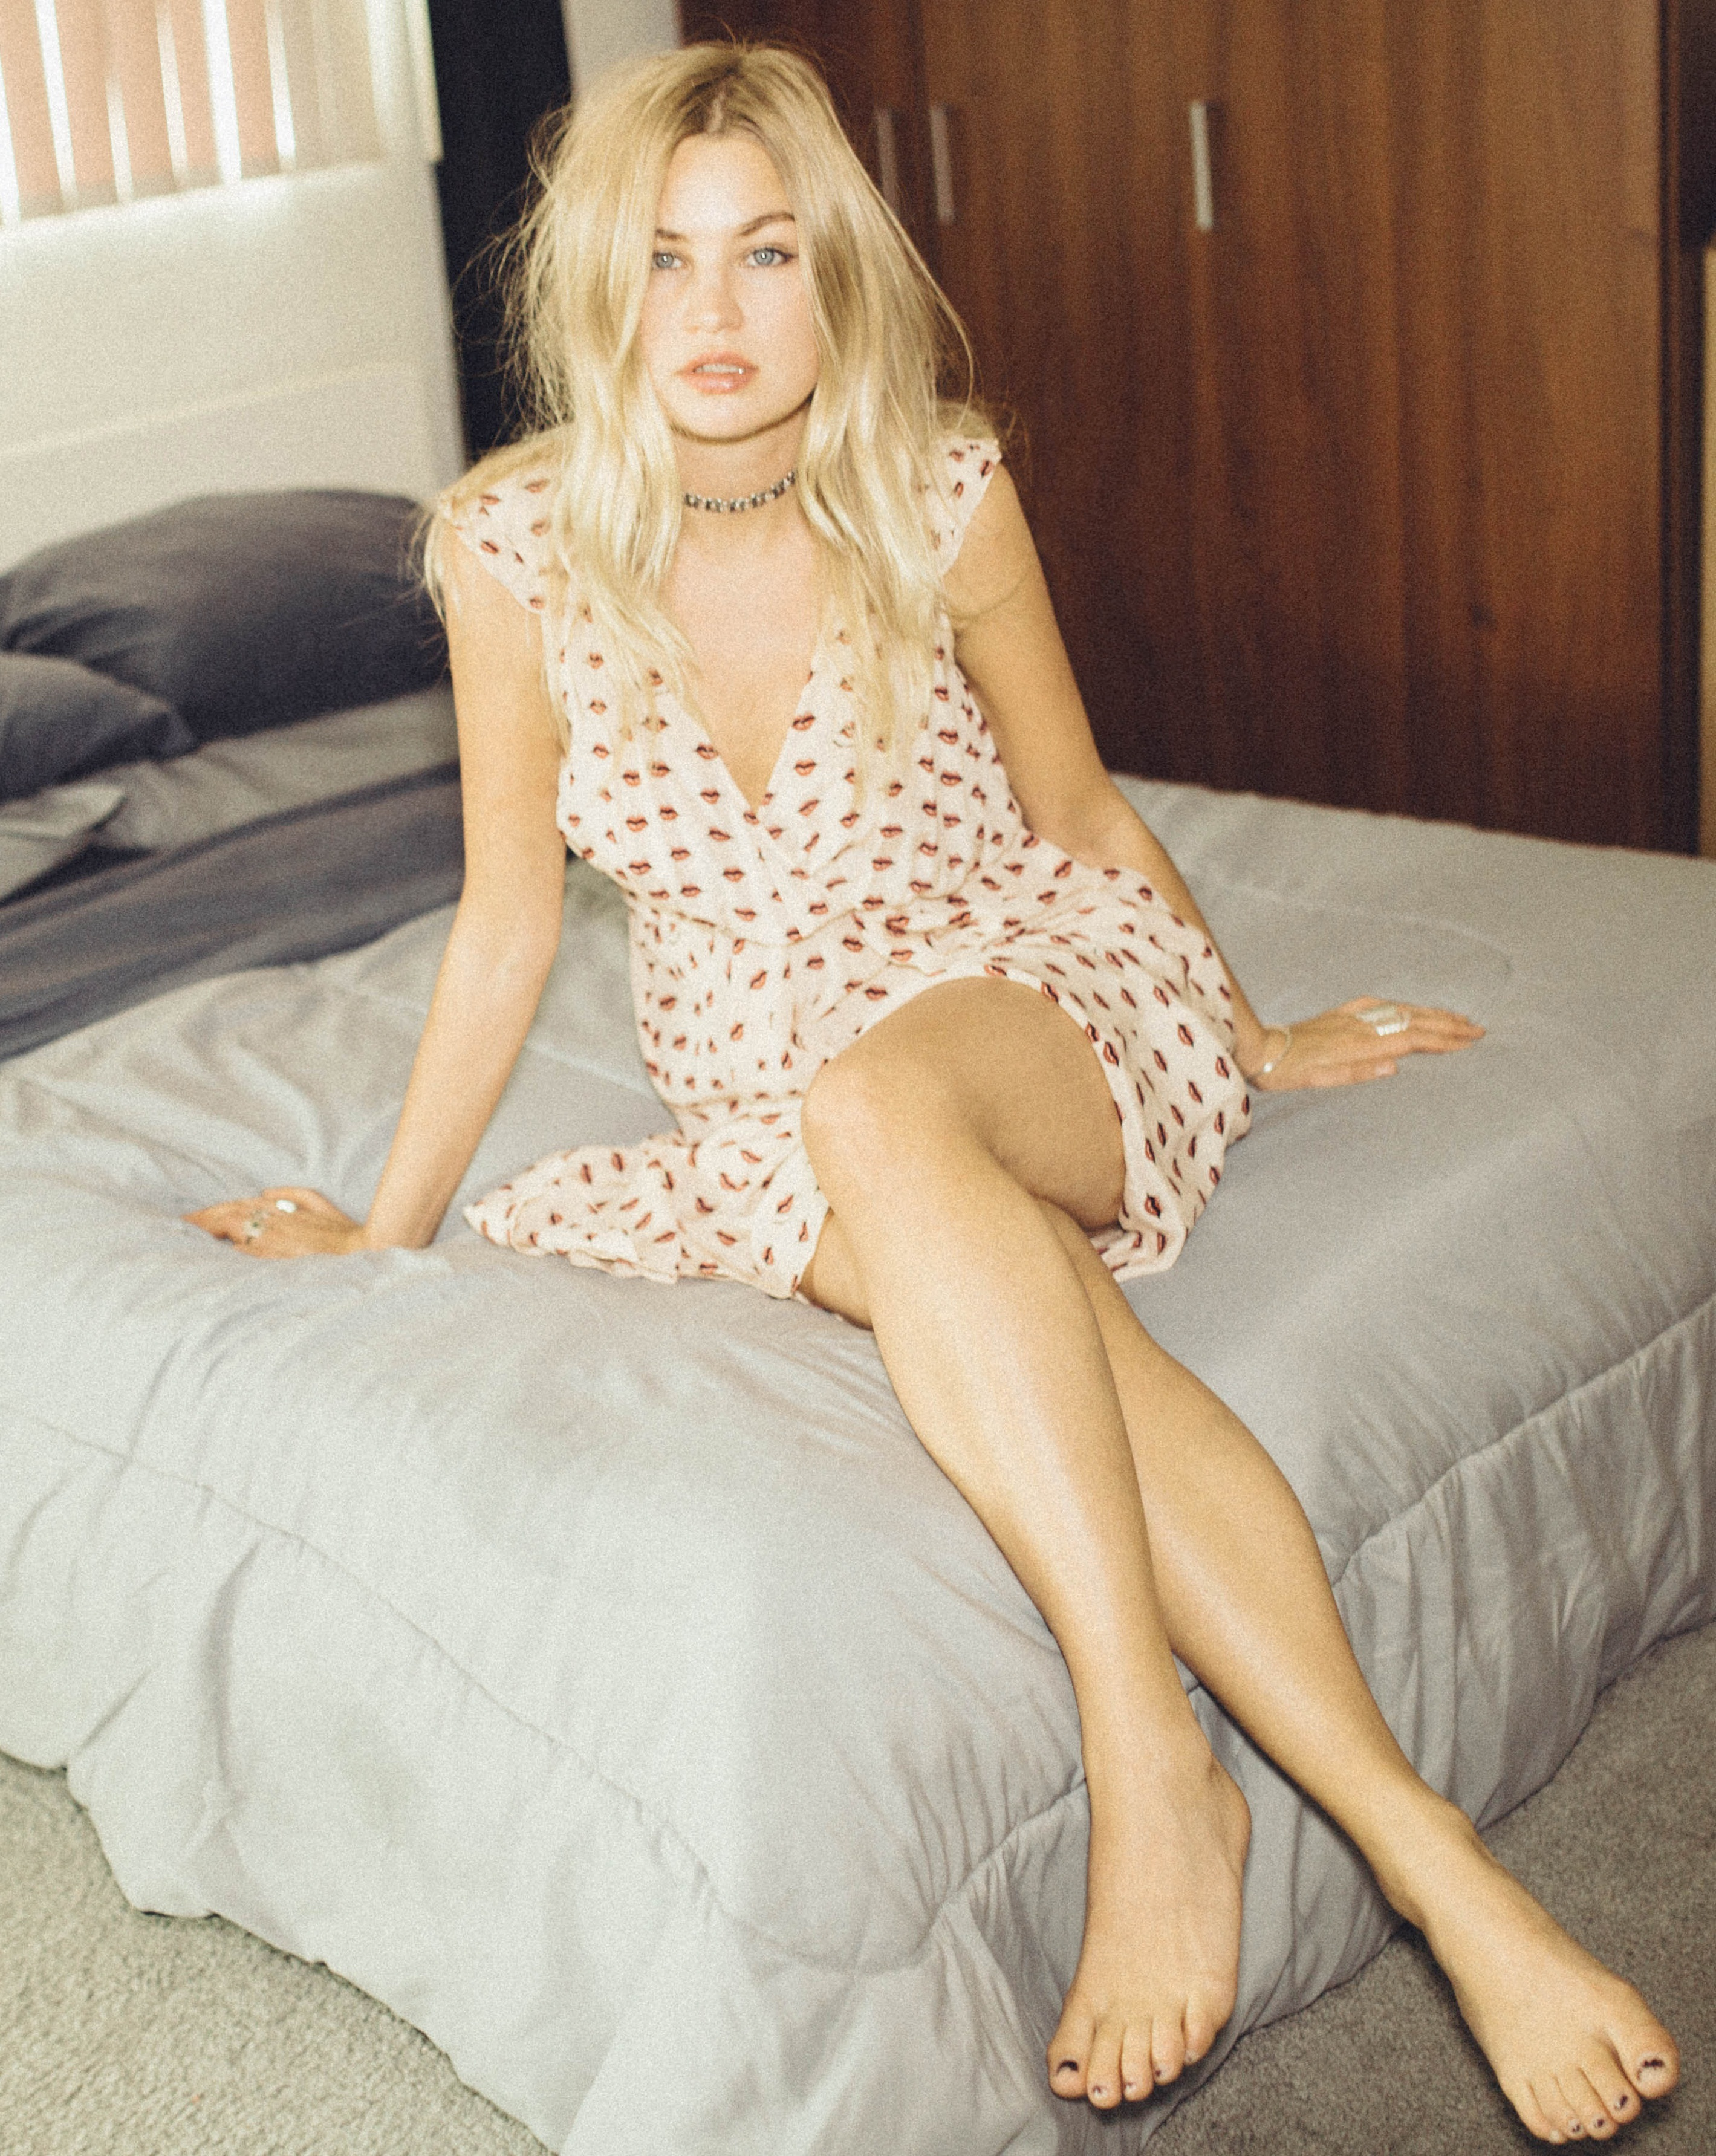 Feet Jennifer Akerman nude photos 2019